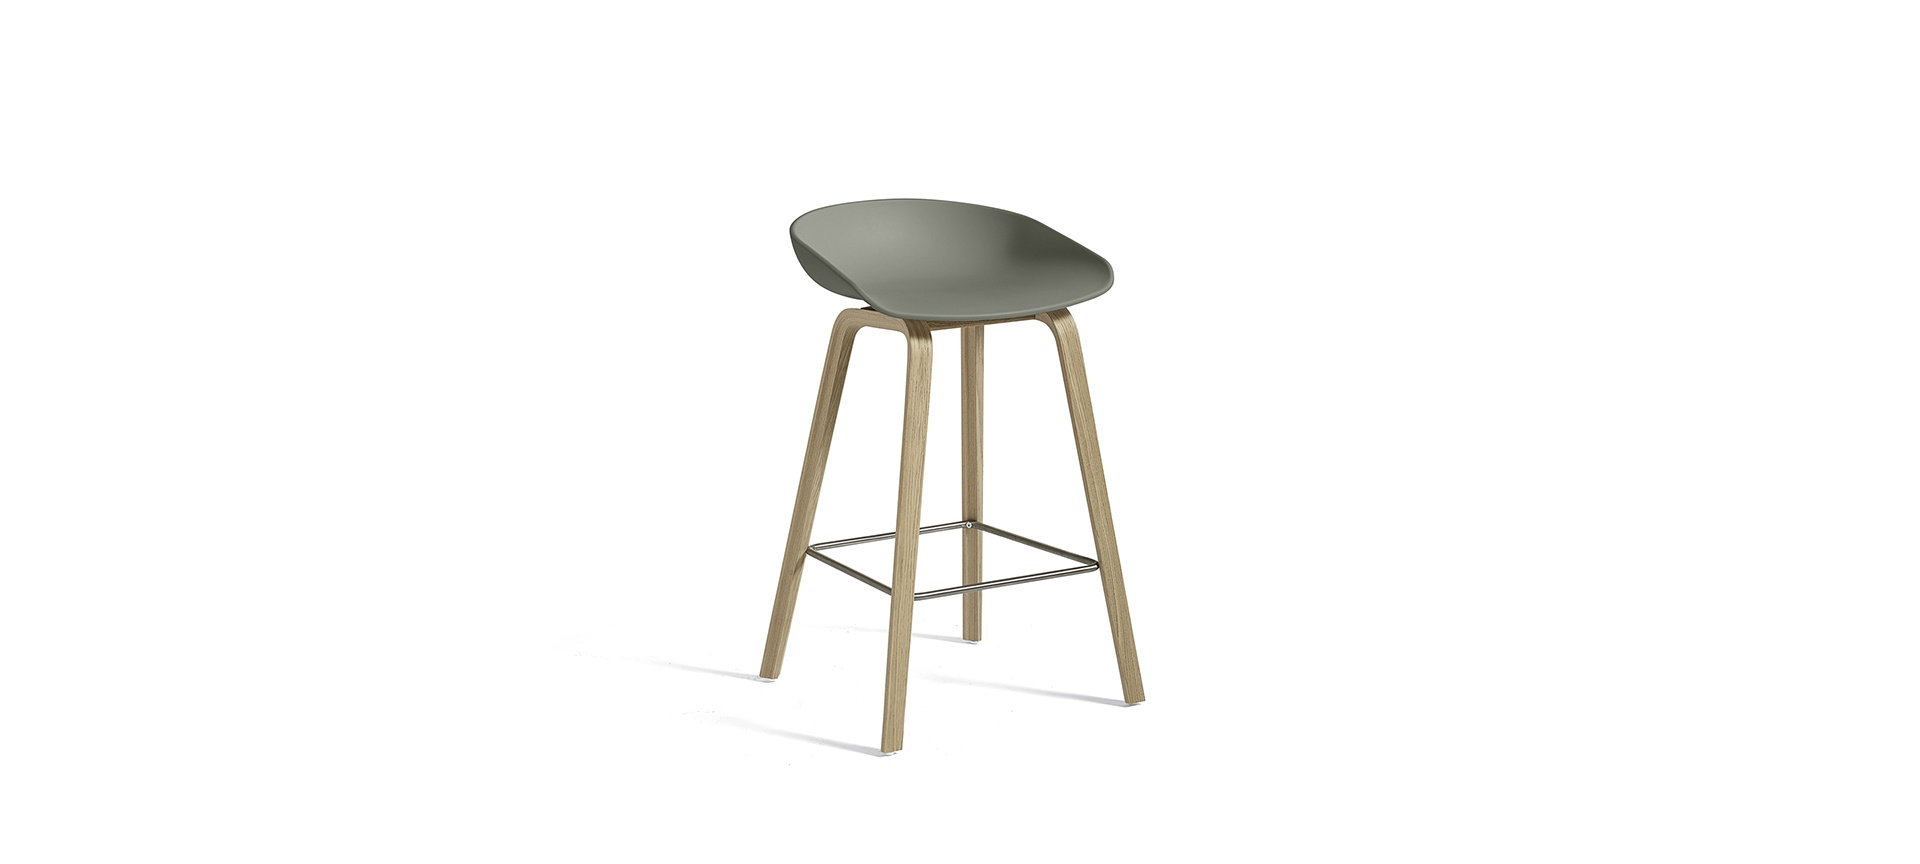 Tabouret about a stool aas32 65cm hay hay blou paris - Tabouret hay about a stool ...